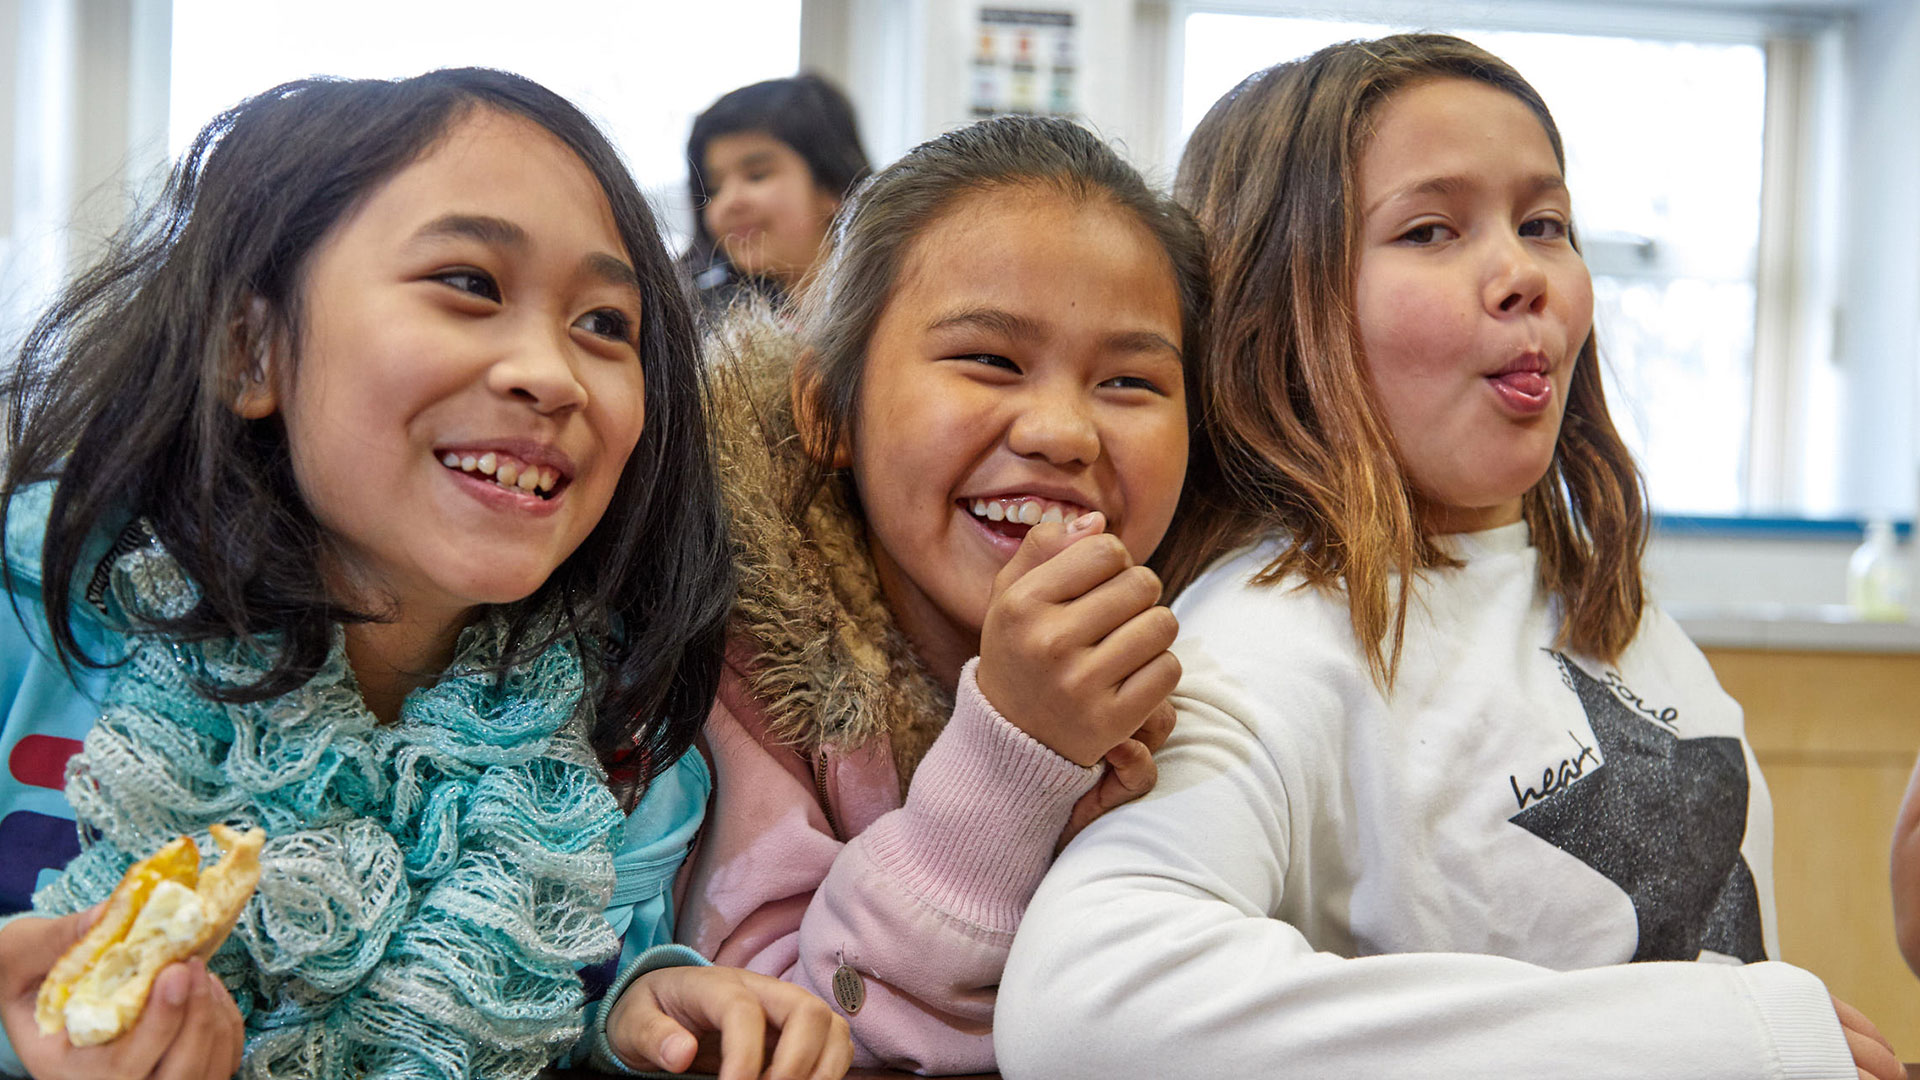 Happy students at Ron Brent Elementary School in Prince George, B.C.